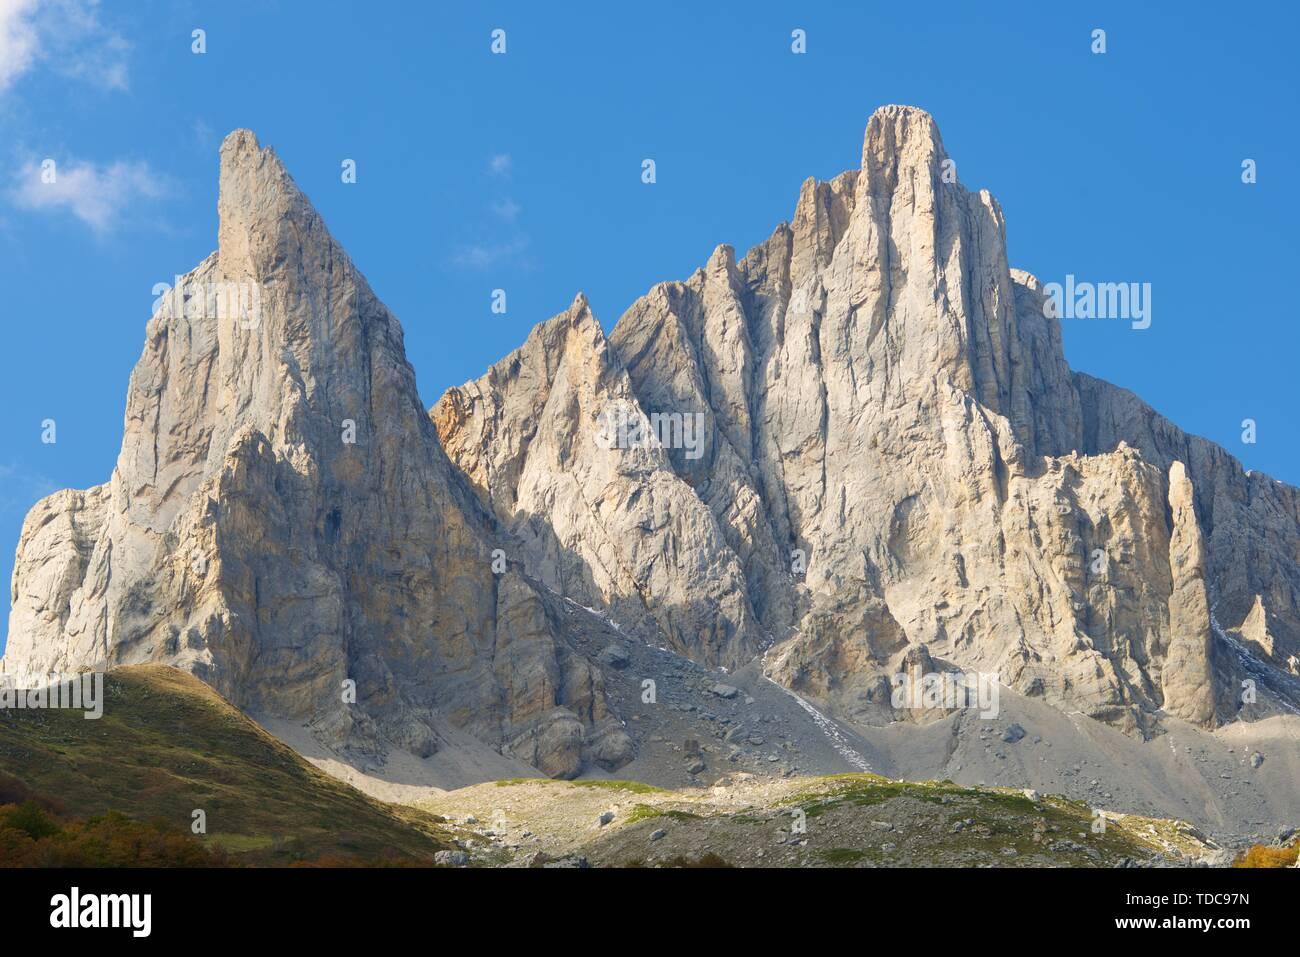 Peaks in Lescun Cirque. On the left Petite Aiguille Ansabere and to the right Grand Aiguille Ansabere. Aspe Valley, Pyrenees, France. - Stock Image